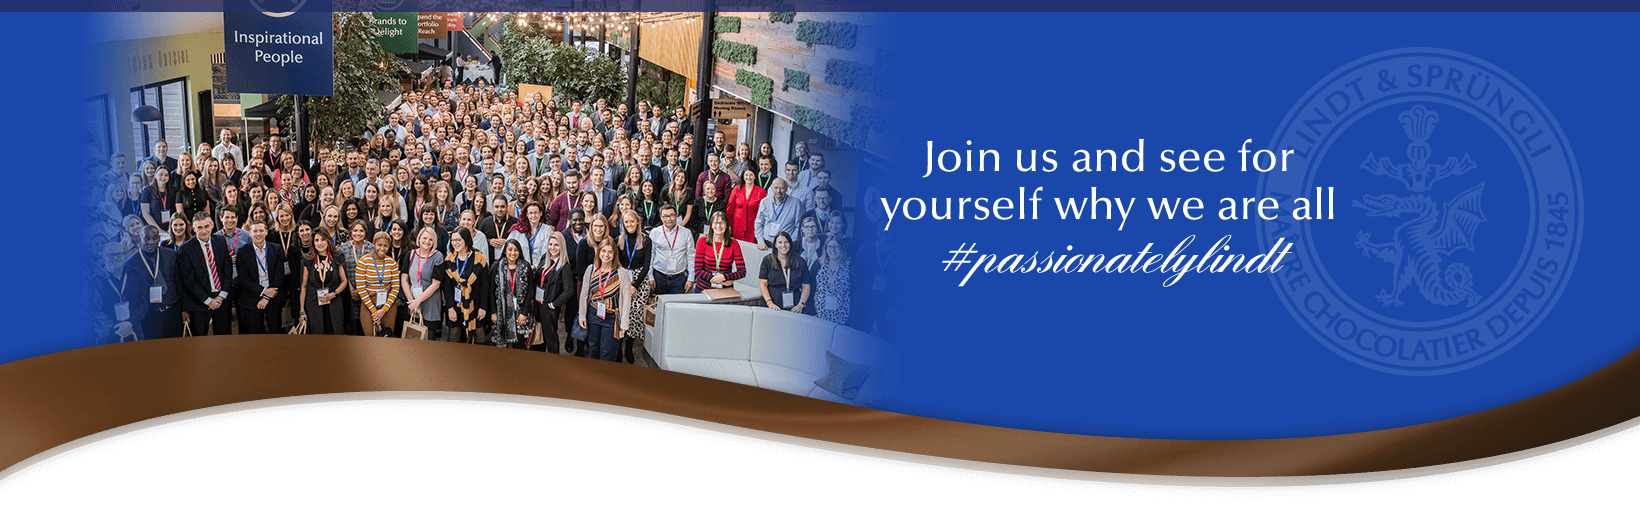 Join us and see for yourself why we are all #passionatelylindt